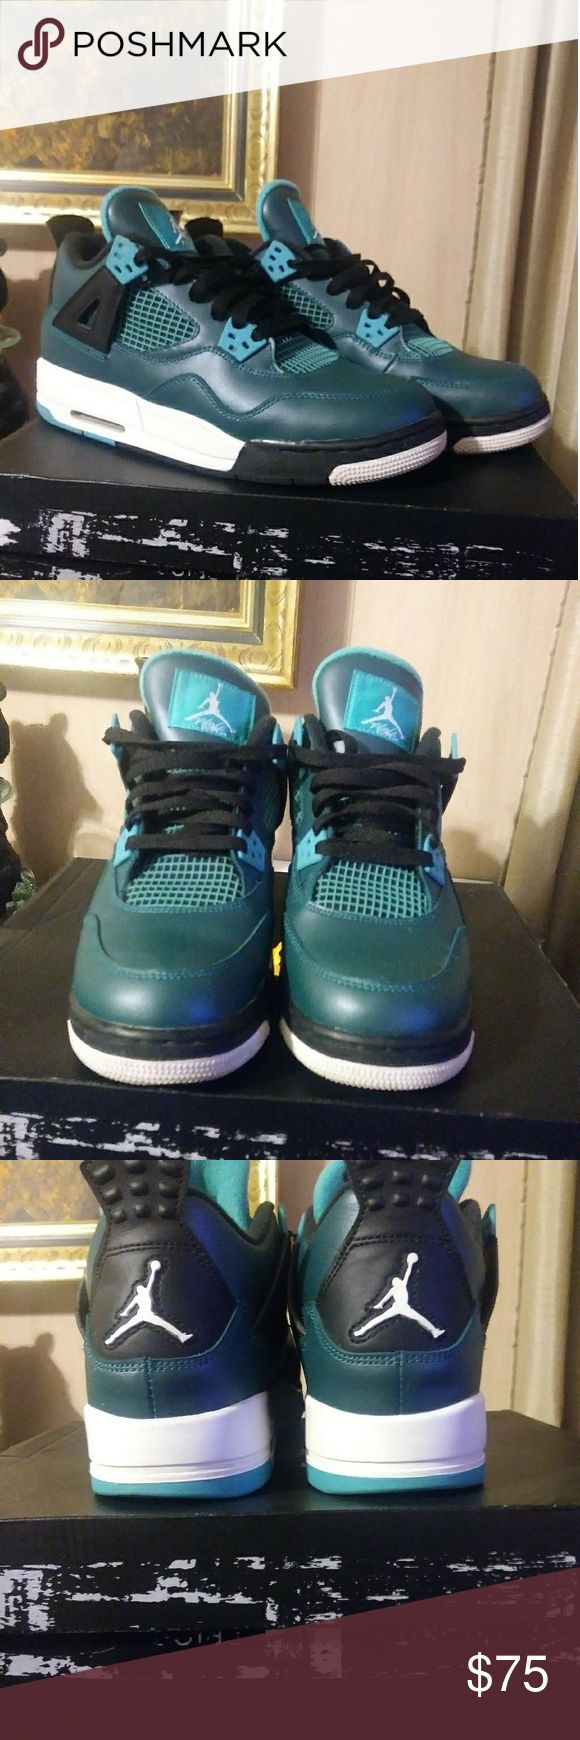 Jordan Retro 4 30th Anniversary Basically new, wore maybe 3 ×'s. Jordan 4 Retro 30th Anniversary. Teal & black. Size 7y which also is 8 mens/8.5 women's. No heel drag, no major flaws. White parts are still nice & white, NO YELLOWING OR DIRT ON WHITE PARTS. Very, very lite dirt on soles but should clean right & does not affect appearance while wearing. Nice pr of Jordans. Has original box, but its damaged from storage, shoes are NOT effected. Please feel free to ask questions before…